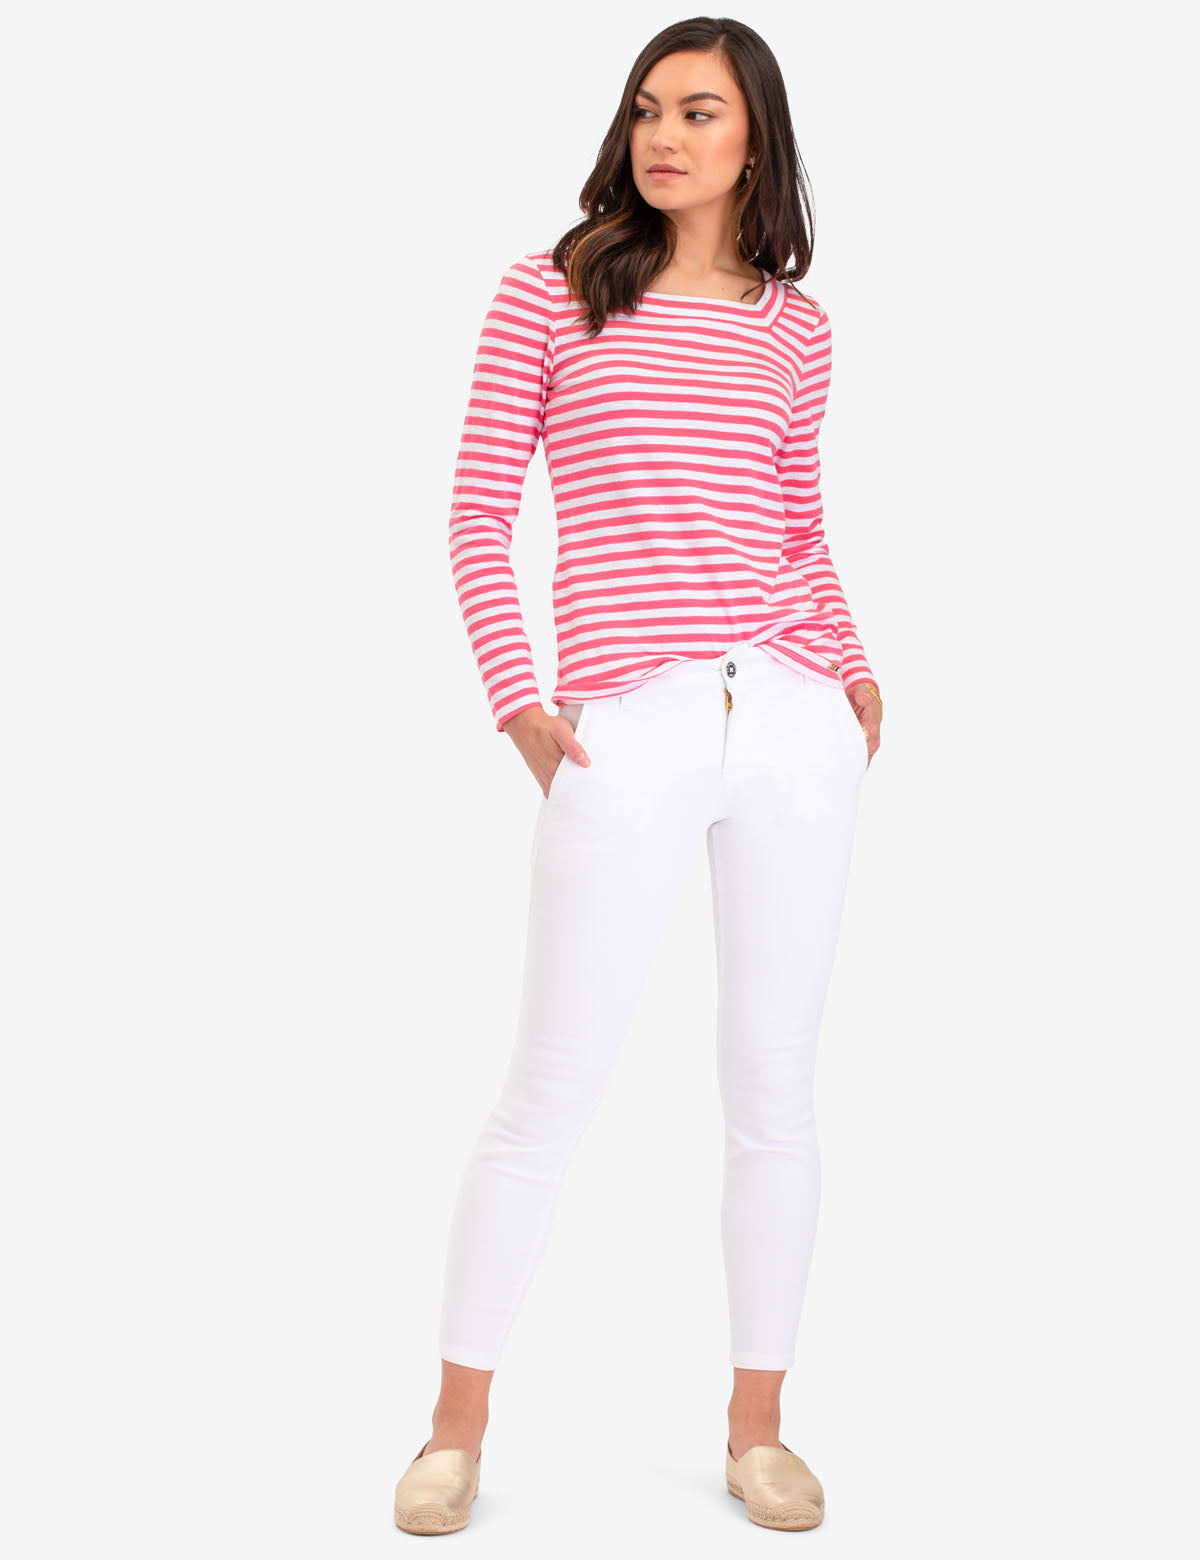 LONG SLEEVE SQUARE NECK STRIPED SHIRT - U.S. Polo Assn.